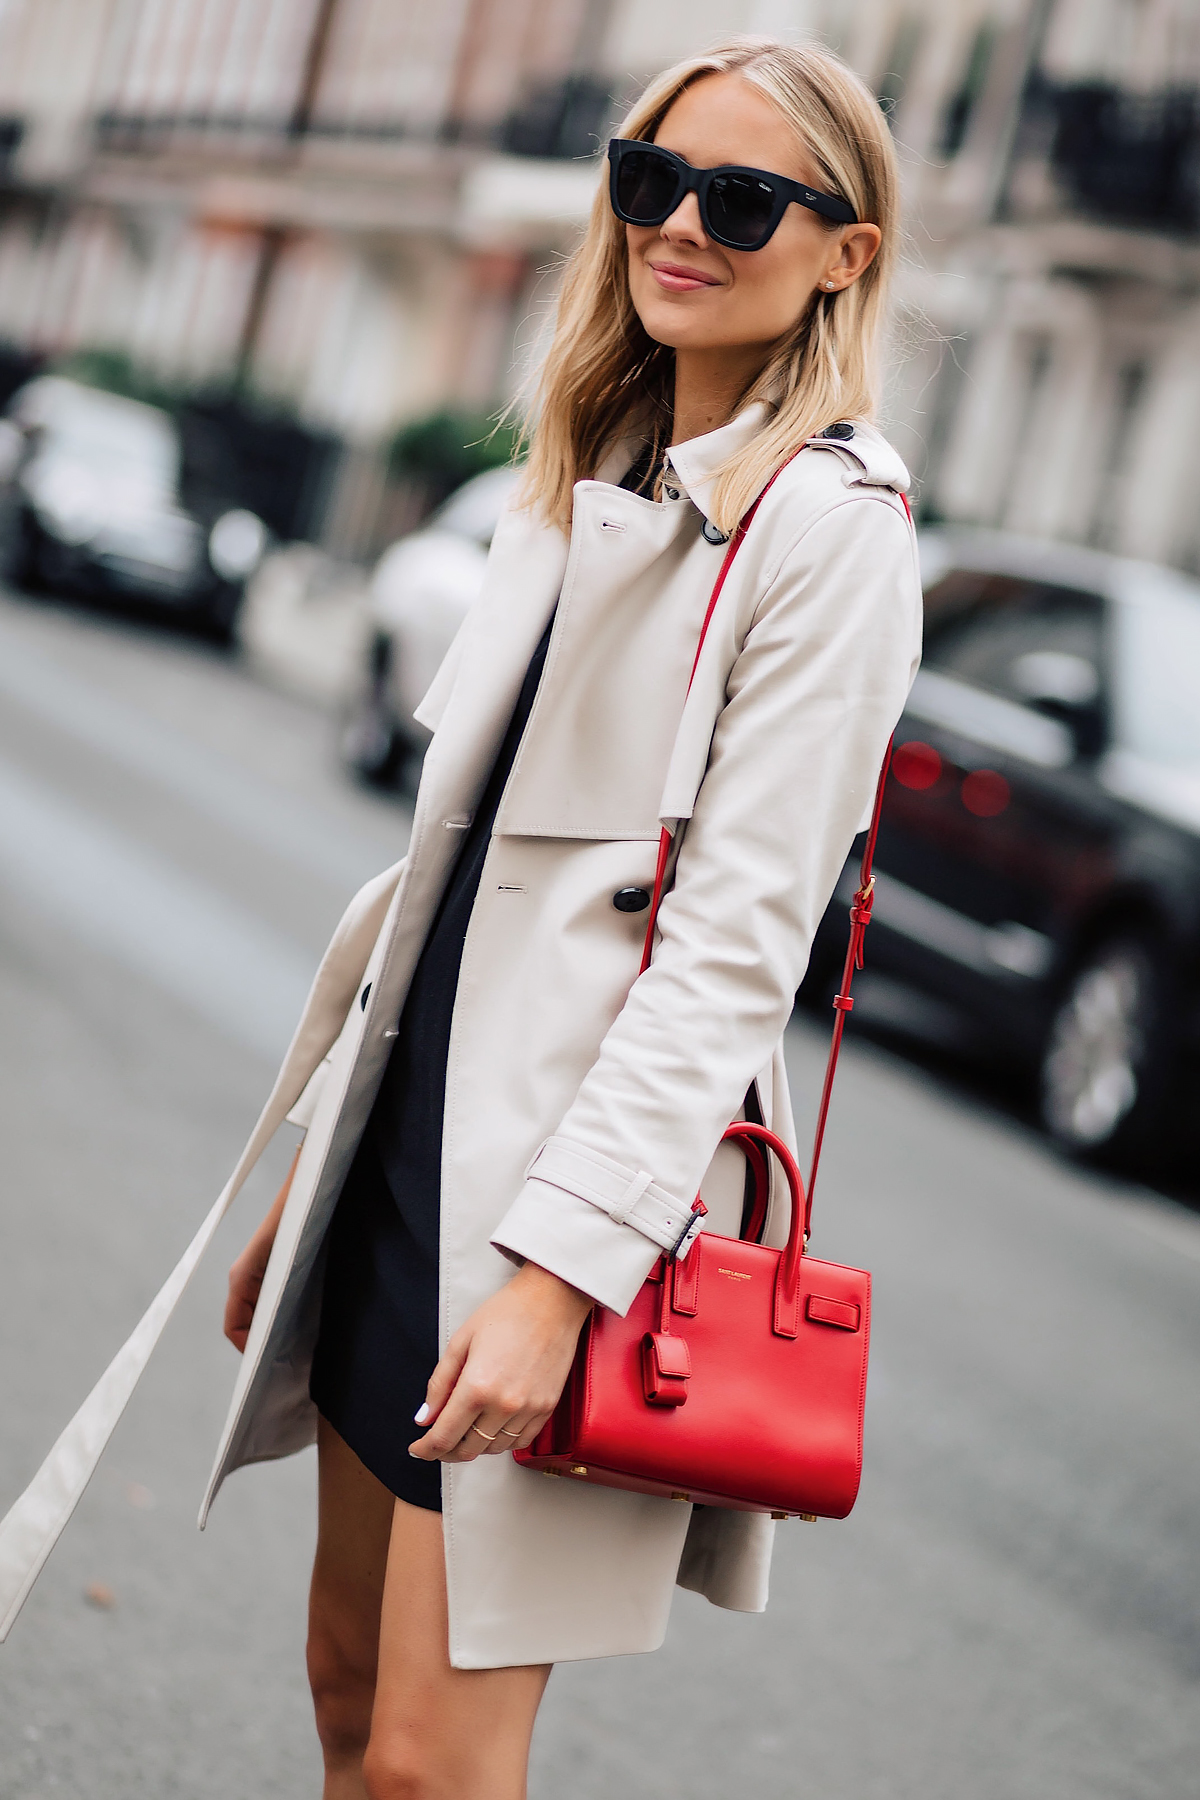 Blonde Woman Wearing Club Monaco Trench Coat Black Dress Outfit Red YSL Sac De Jour Handbag Fashion Jackson San Diego Fashion Blogger London Street Style